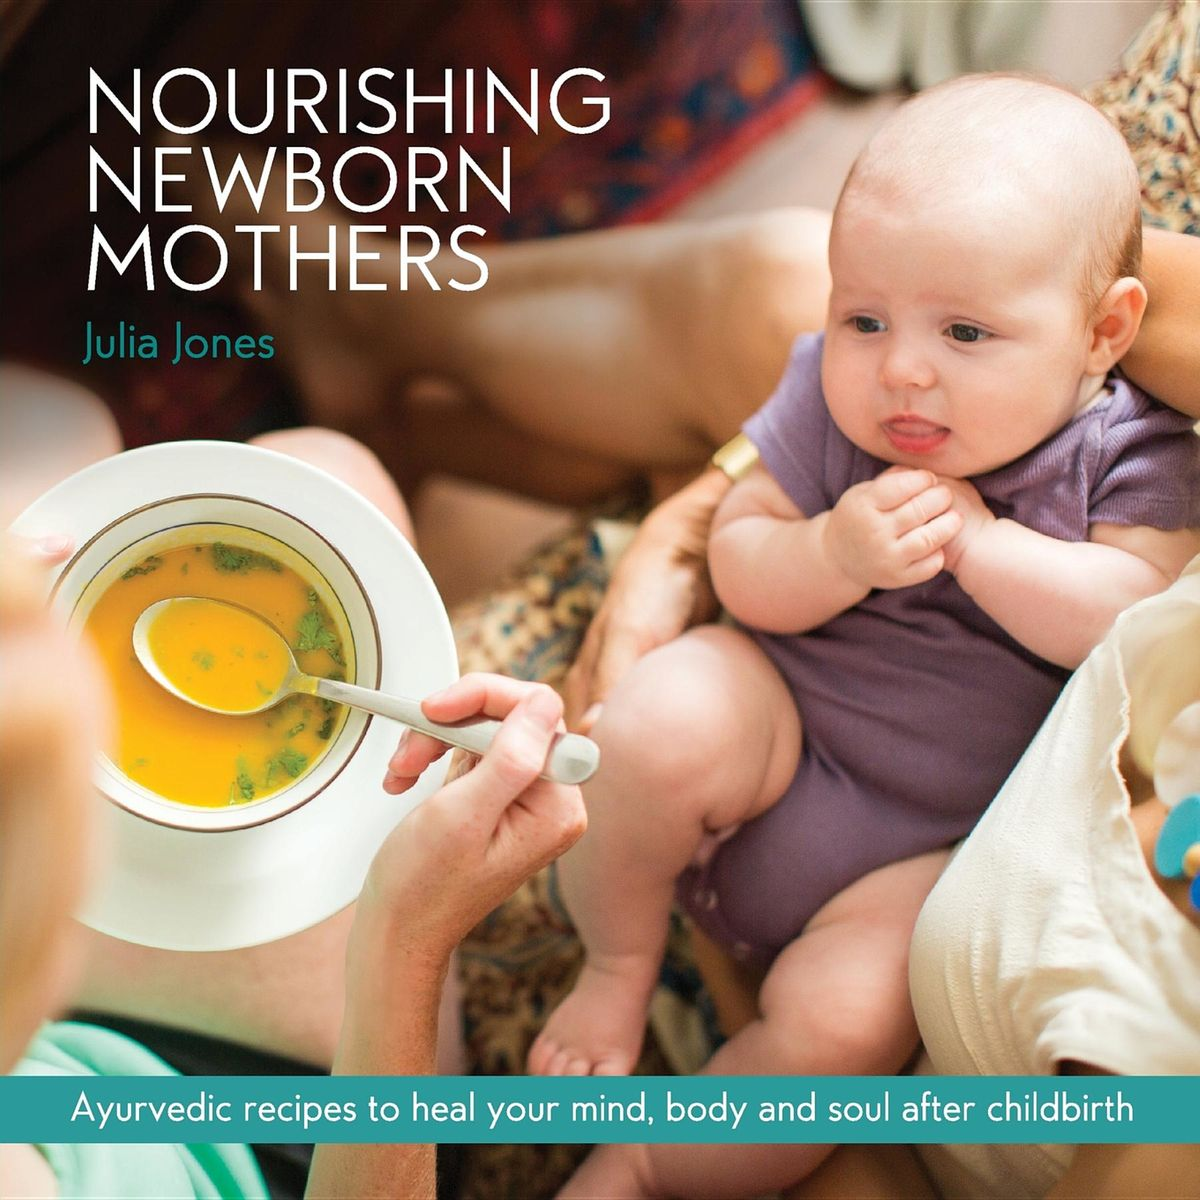 Nourishing Newborn MothersAyurvedic recipes to heal your mind,  body and ... by Julia Jones, ISBN: 9780648343110